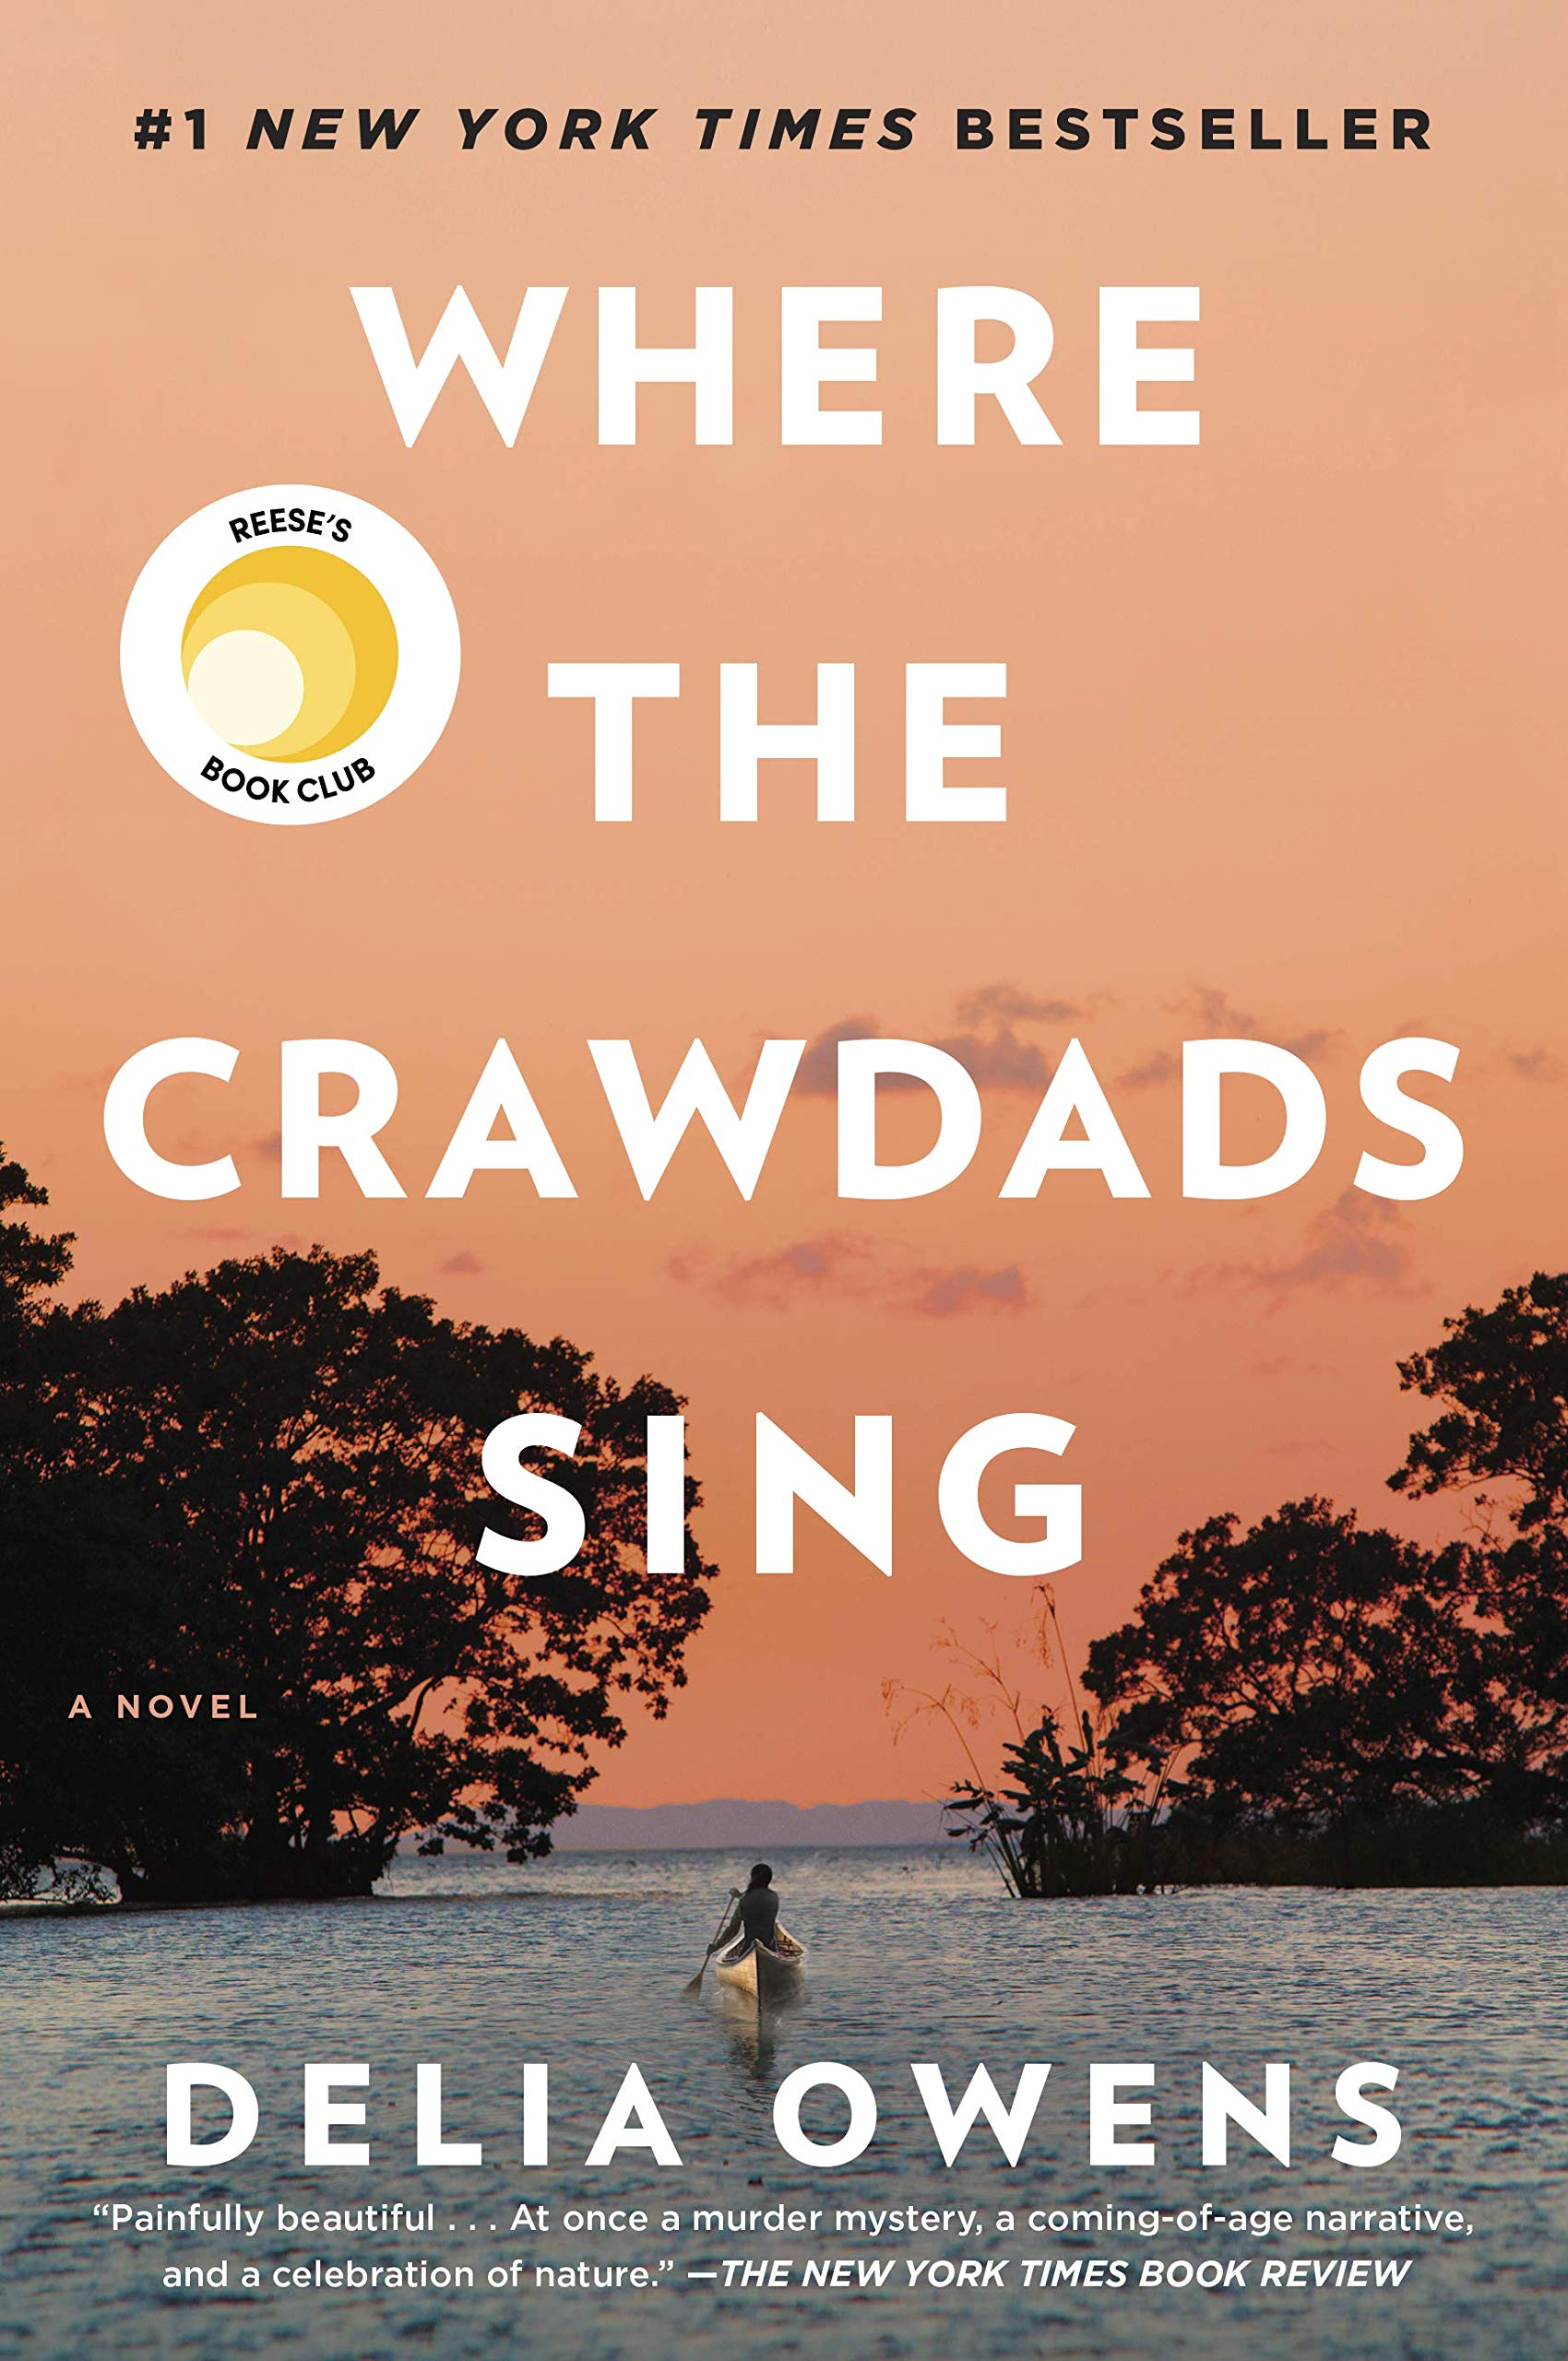 gustobeats book club for recommended novel where the crawdads sing